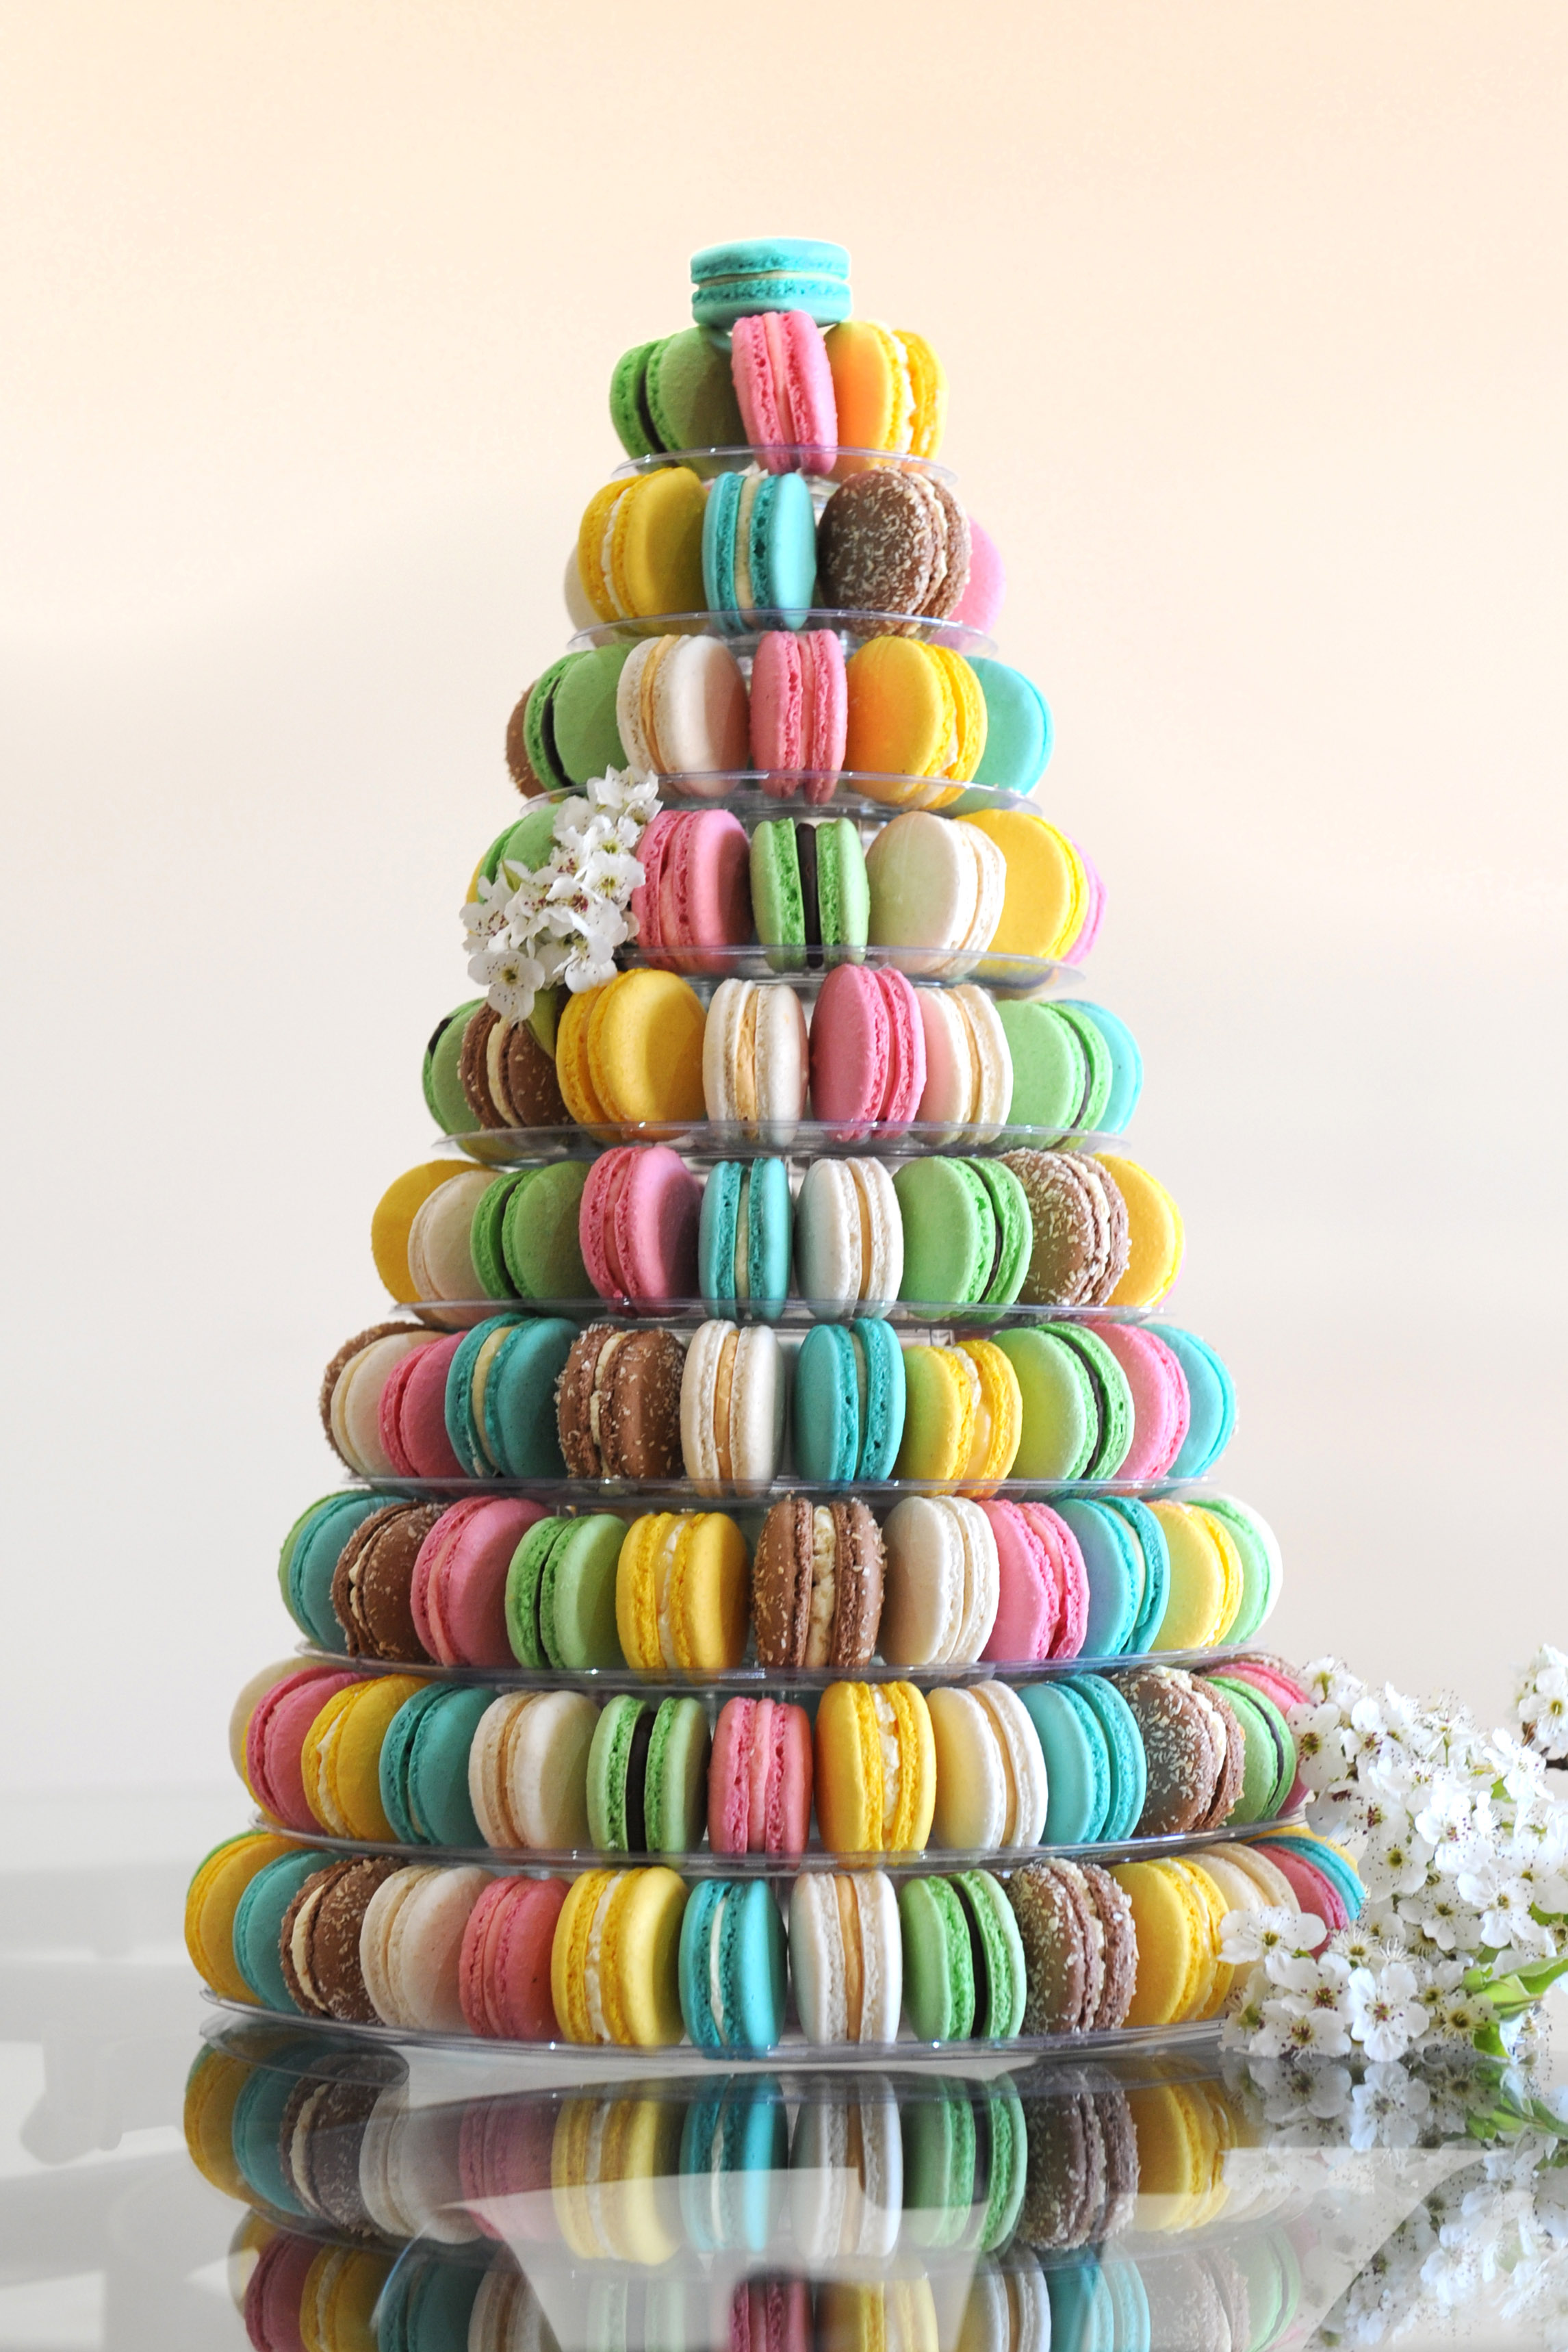 macaroon cake stand - photo #31